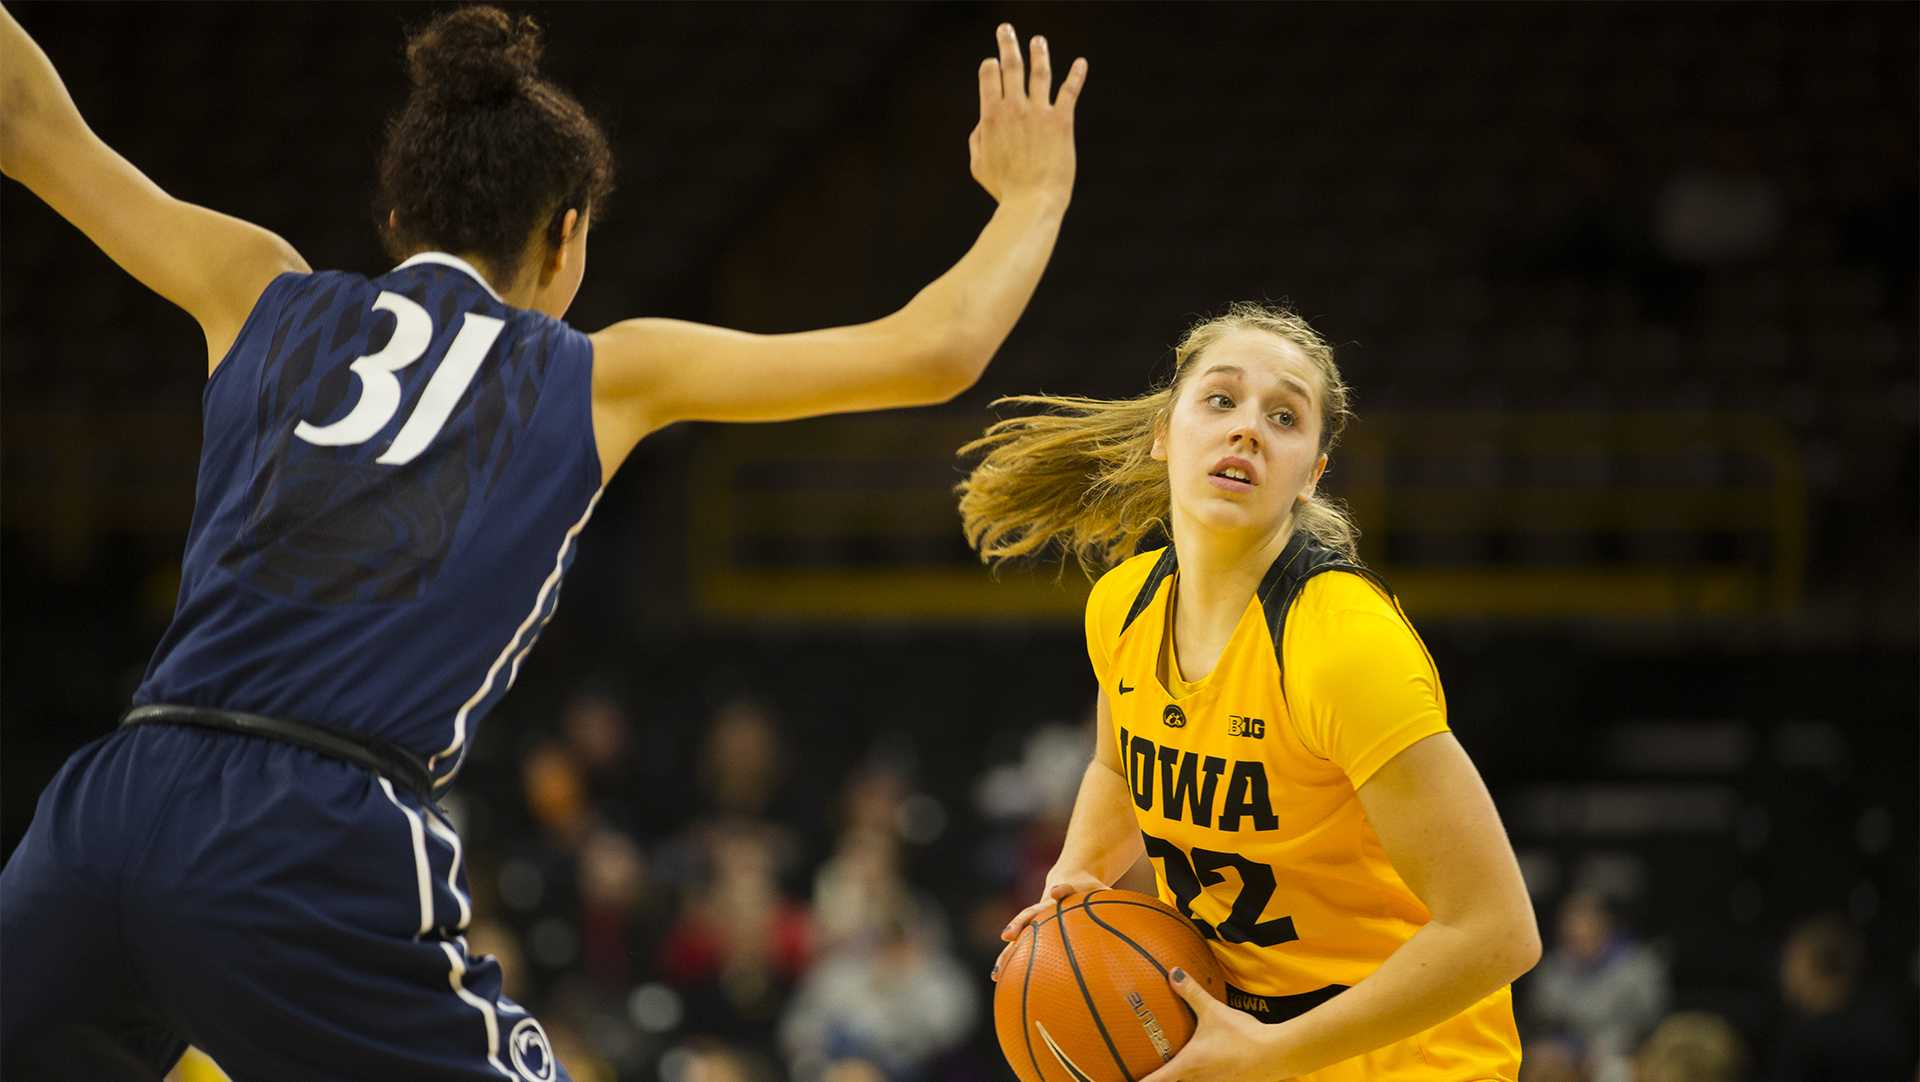 Iowa guard Kathleen Doyle looks to pass the ball during the Iowa/Penn State basketball game at Carver-Hawkeye Arena on Thursday, Feb. 8, 2018. The Hawkeyes defeated the Nittany Lions, 80-76.  (Lily Smith/The Daily Iowan)